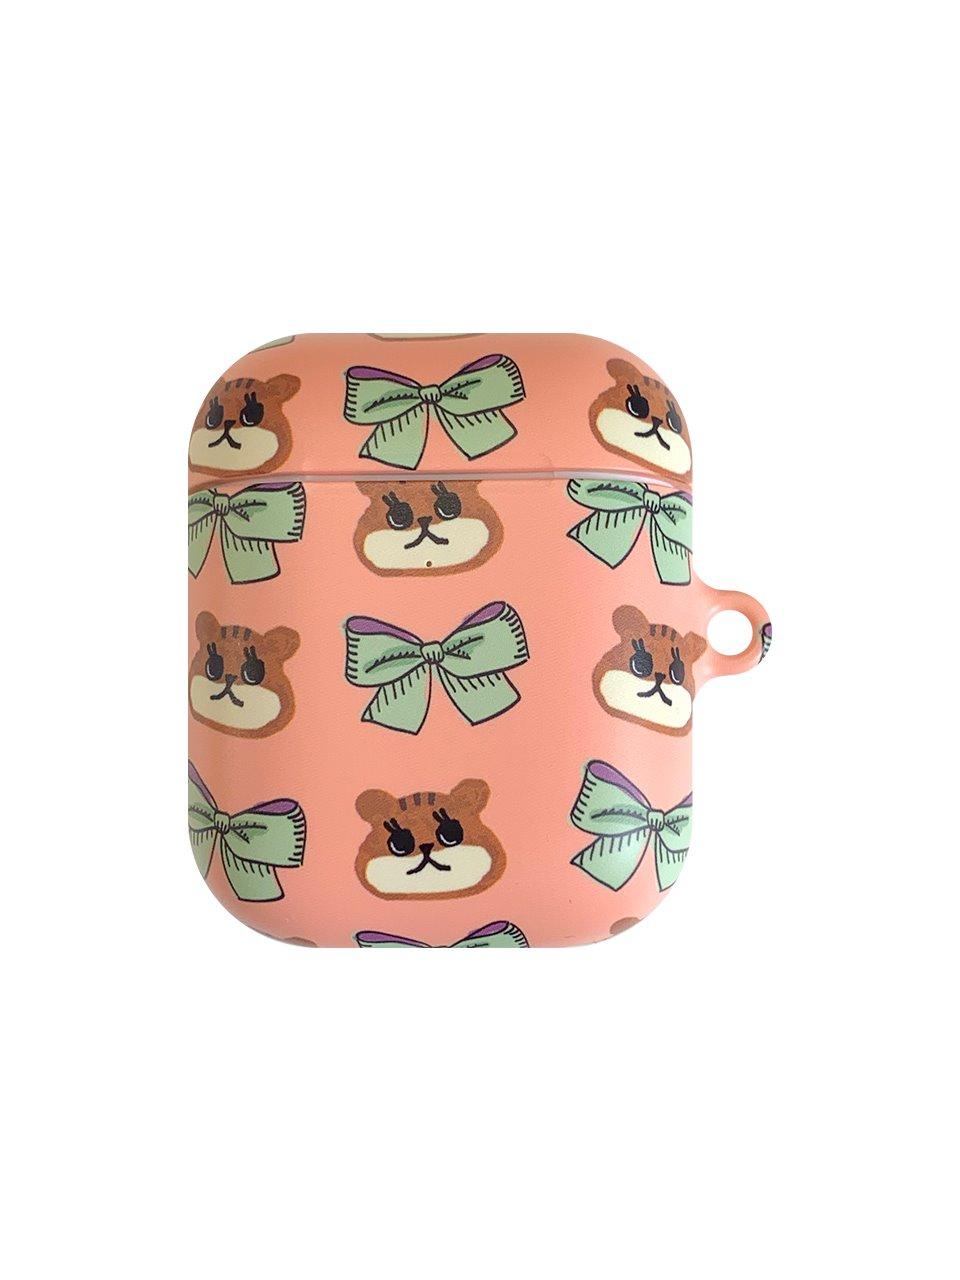 ribbon chipmunk airpods case